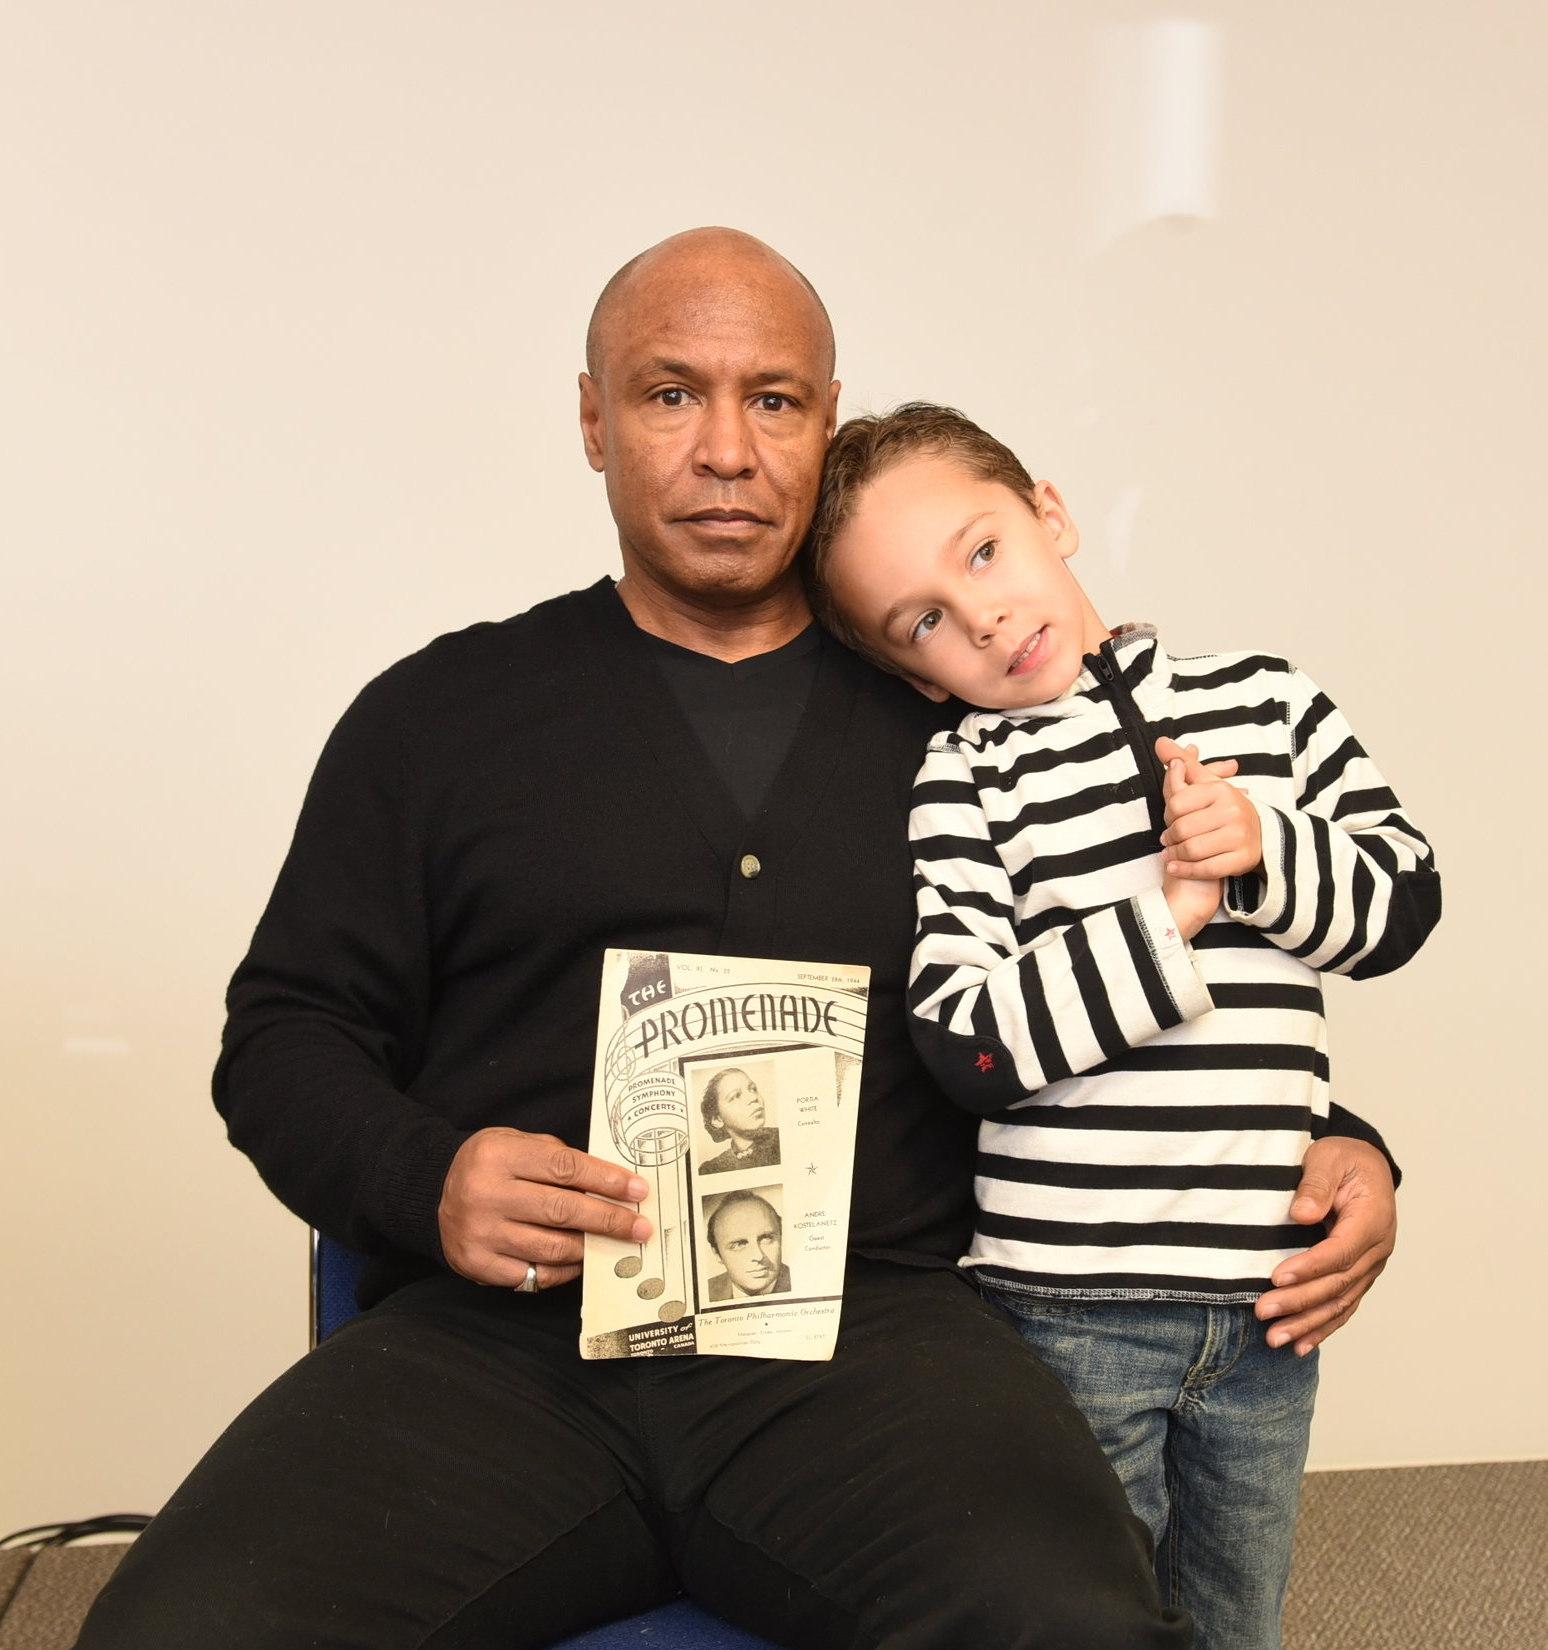 Kevin Gray, the grandson of Portia White, and his five-year-old son Shawn